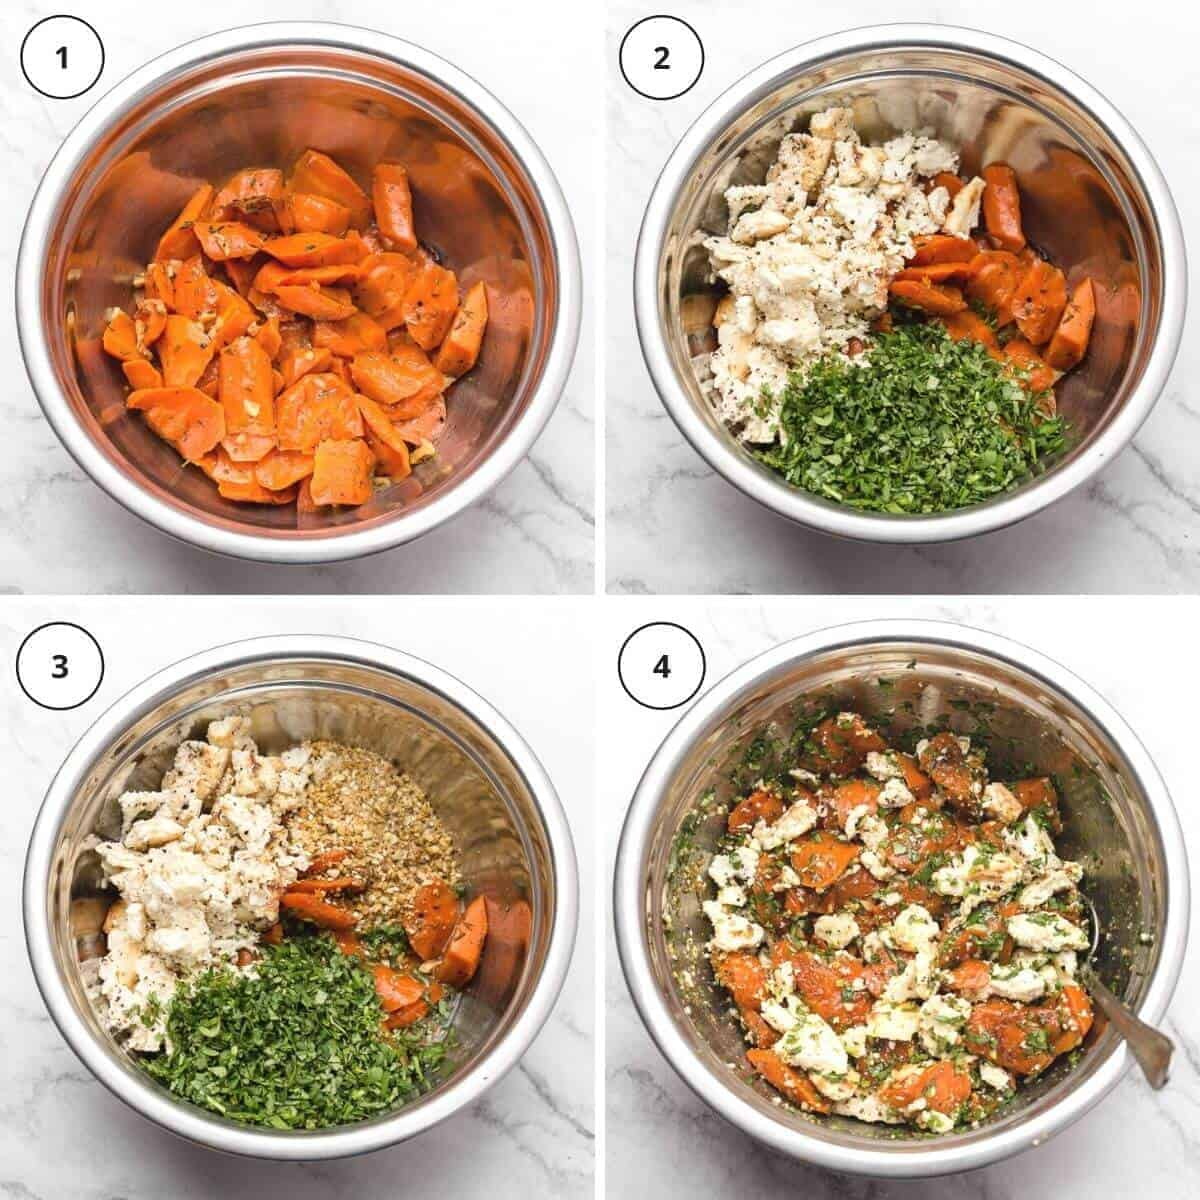 picture steps of written instructions how to make roasted carrot salad